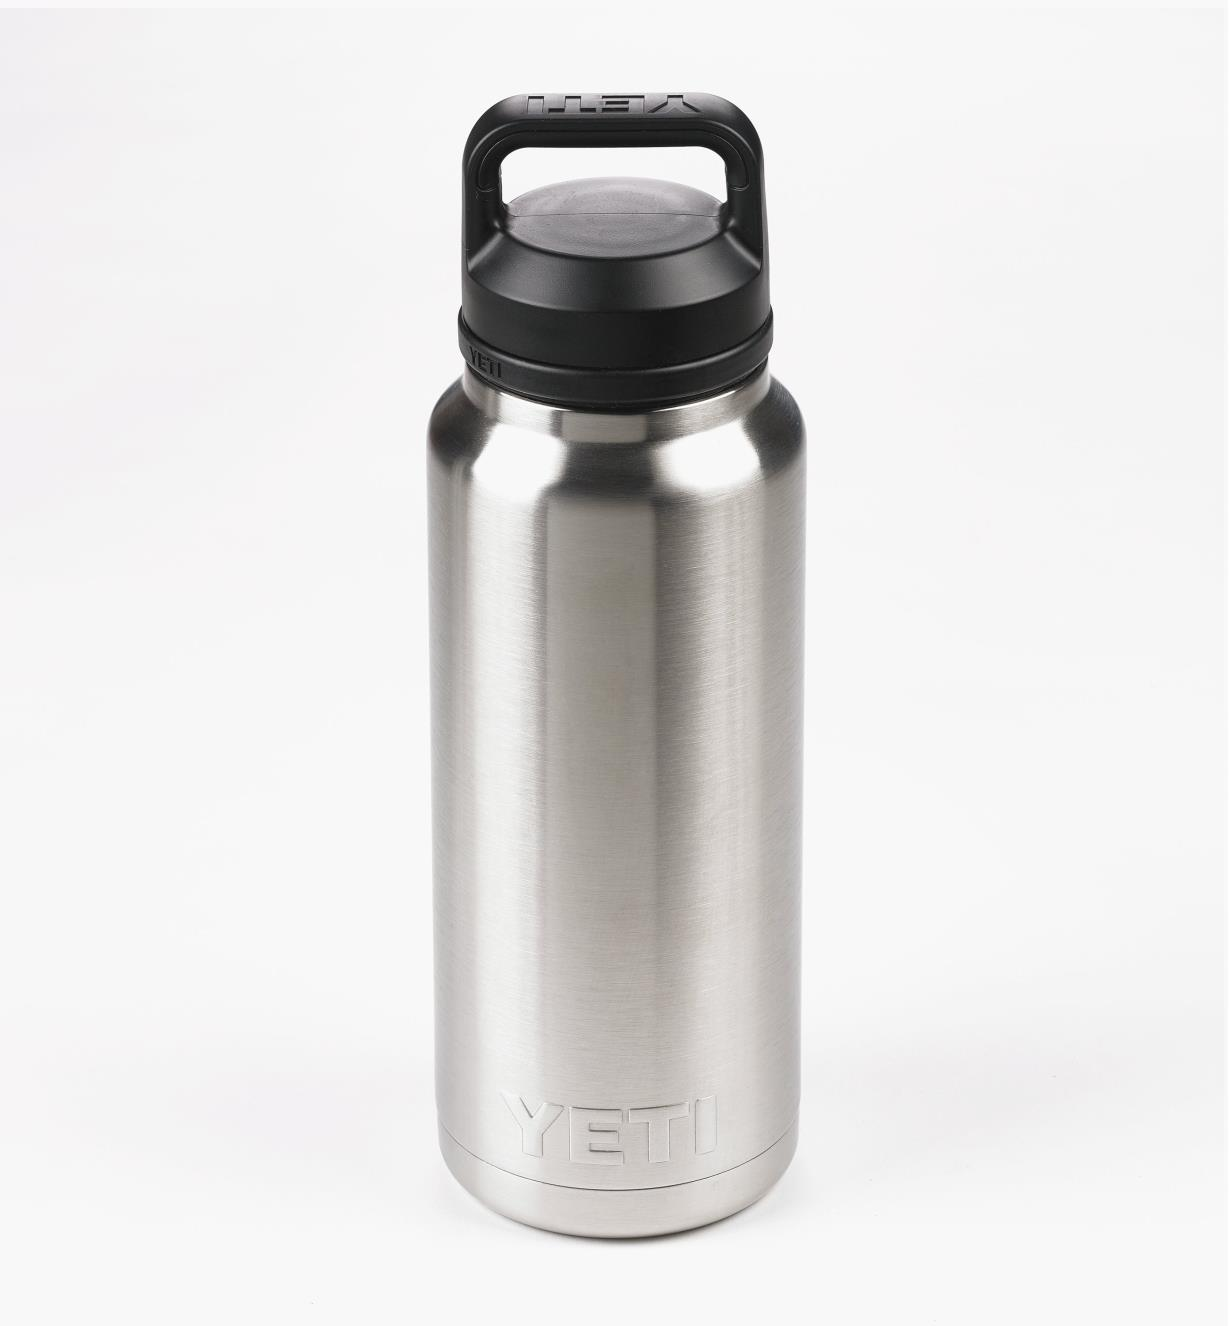 74K0070 - 36 oz Yeti Bottle, Stainless Steel